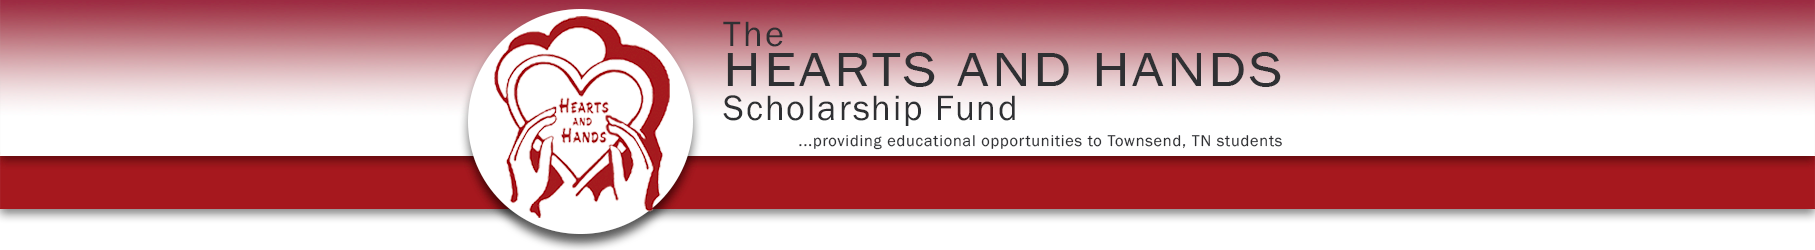 Hearts and Hands Scholarship Fund